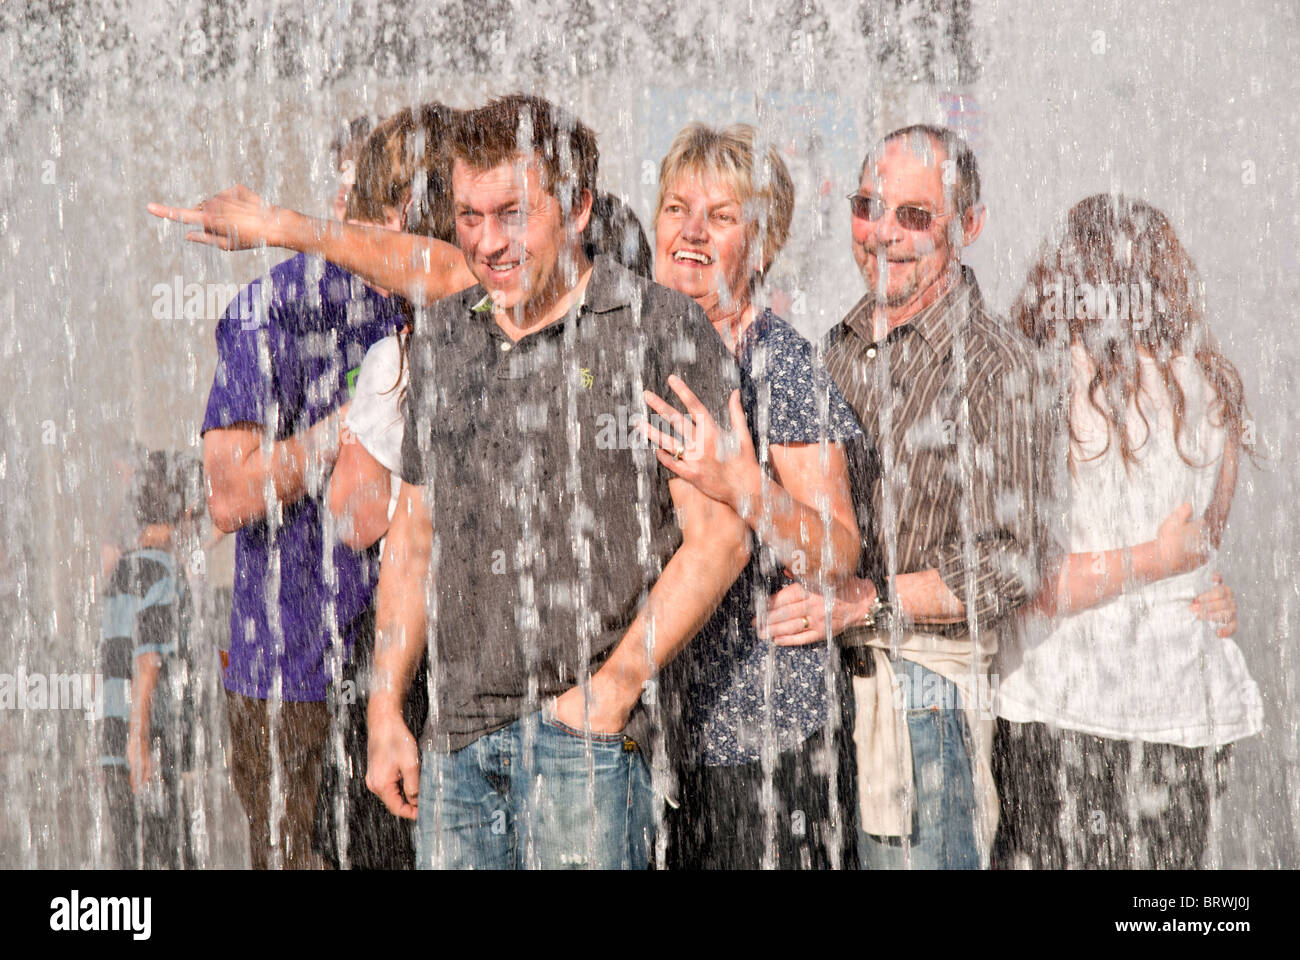 COUPLE OF ADULT ENJOYING THE GOOD WEATHER UNDER THE FOUNTAIN HAVING FUN - Stock Image